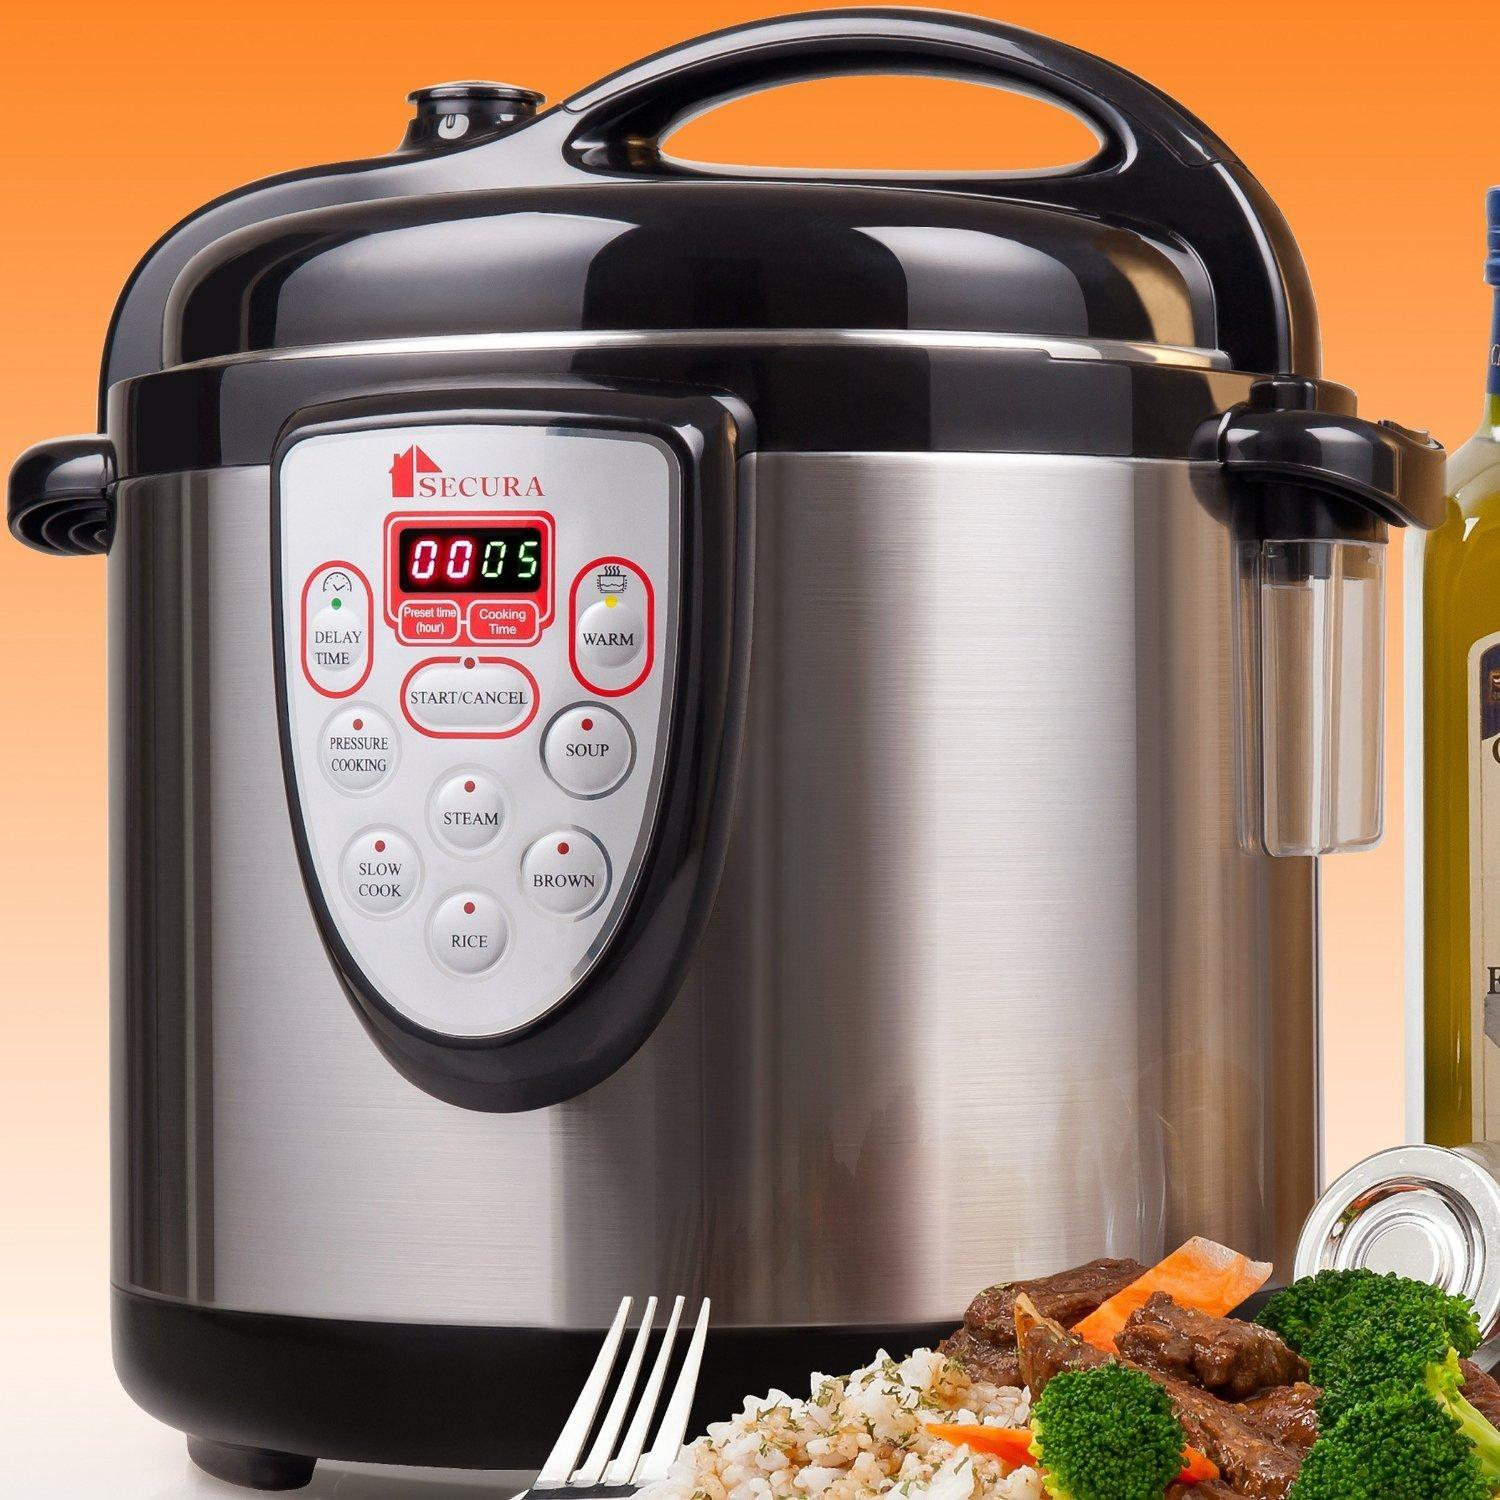 $88.99 Secura 6-in-1 Electric Pressure Cooker 6qt, 18/10 Stainless Steel Cooking Pot